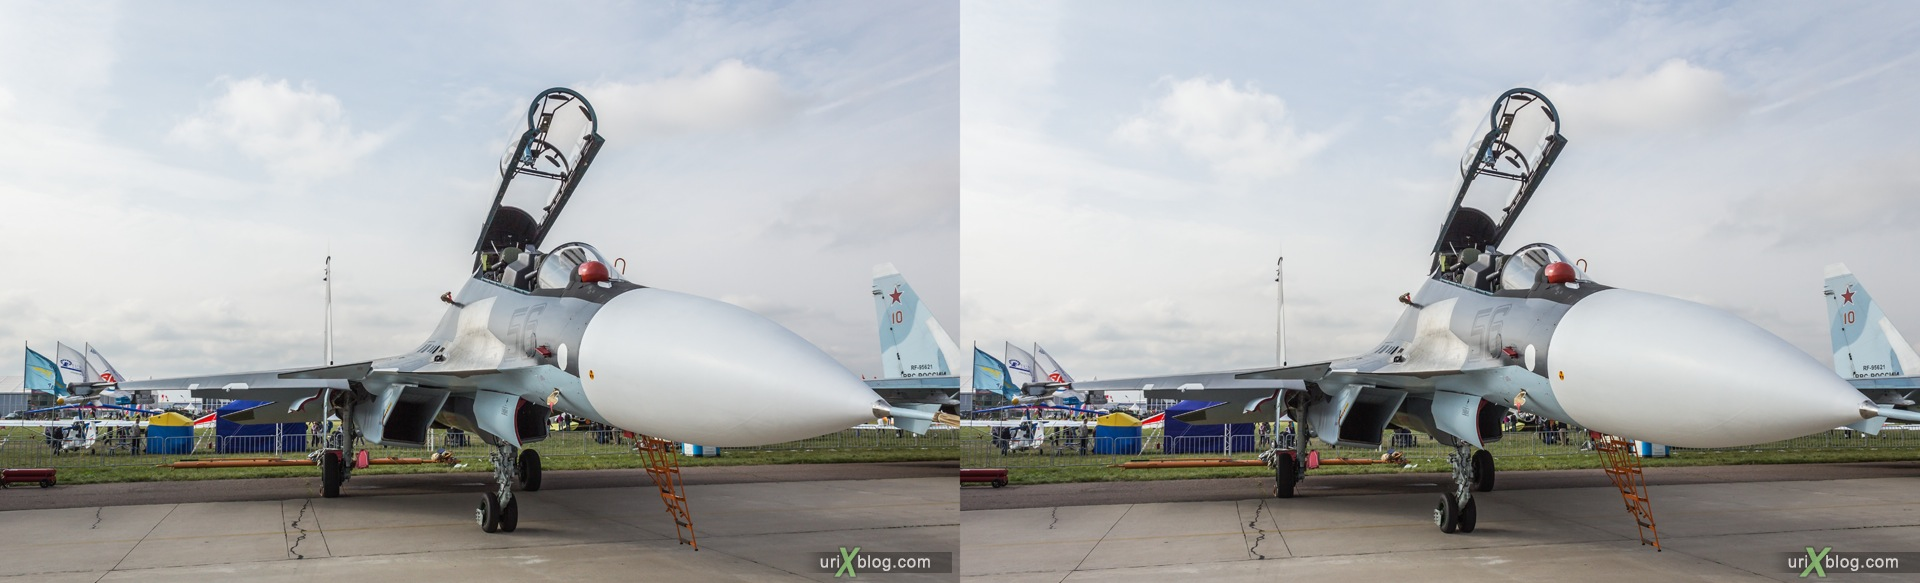 2013, Su-30SM, MAKS, International Aviation and Space Salon, Russia, Soviet, USSR, Ramenskoye airfield, airplane, 3D, stereo pair, cross-eyed, crossview, cross view stereo pair, stereoscopic